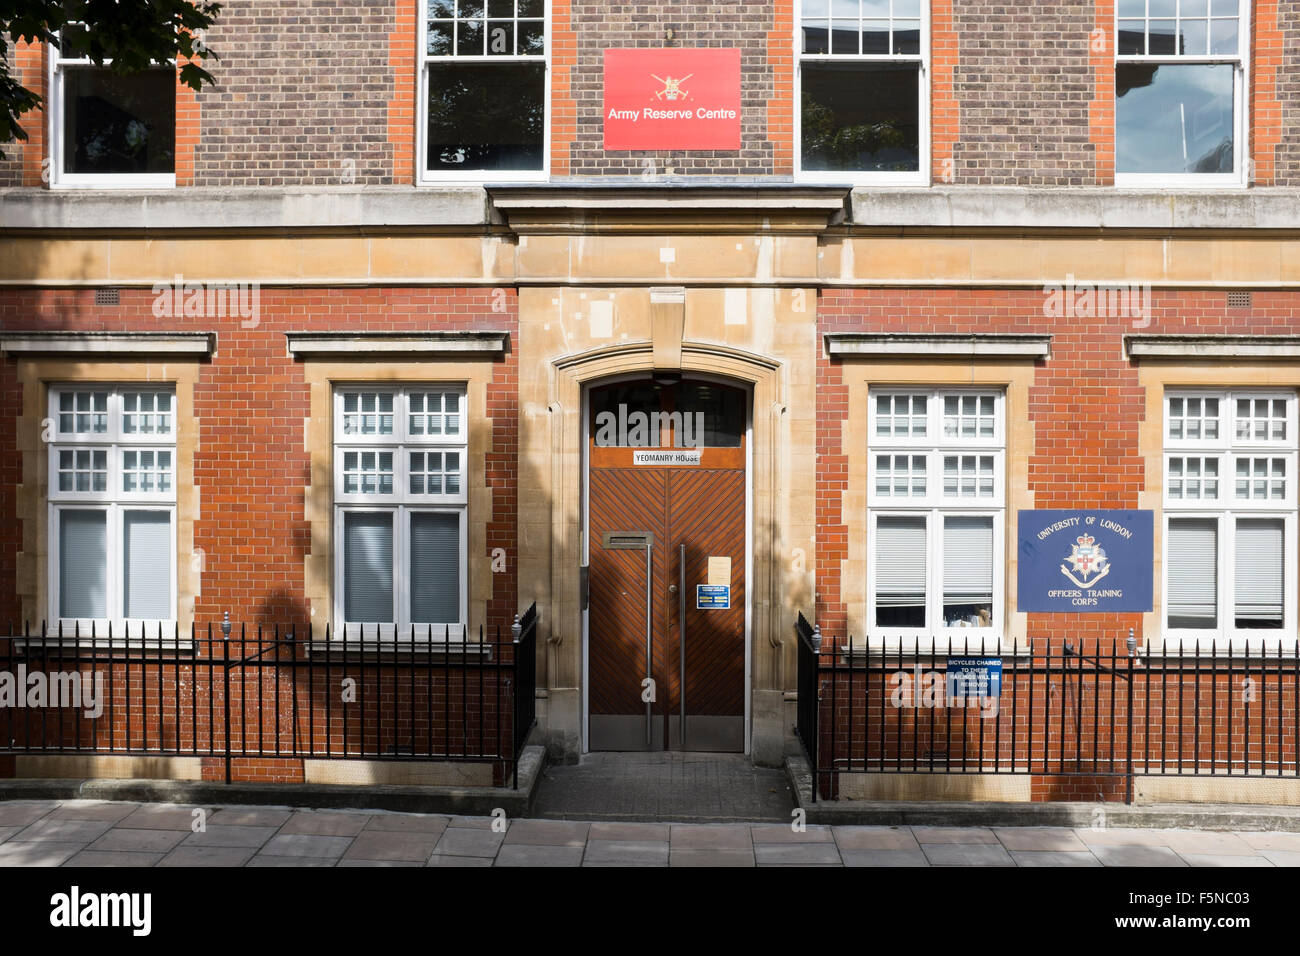 Yeomanry House Army Reserve Centre University of London Officers Training Corp Handel Street London - Stock Image